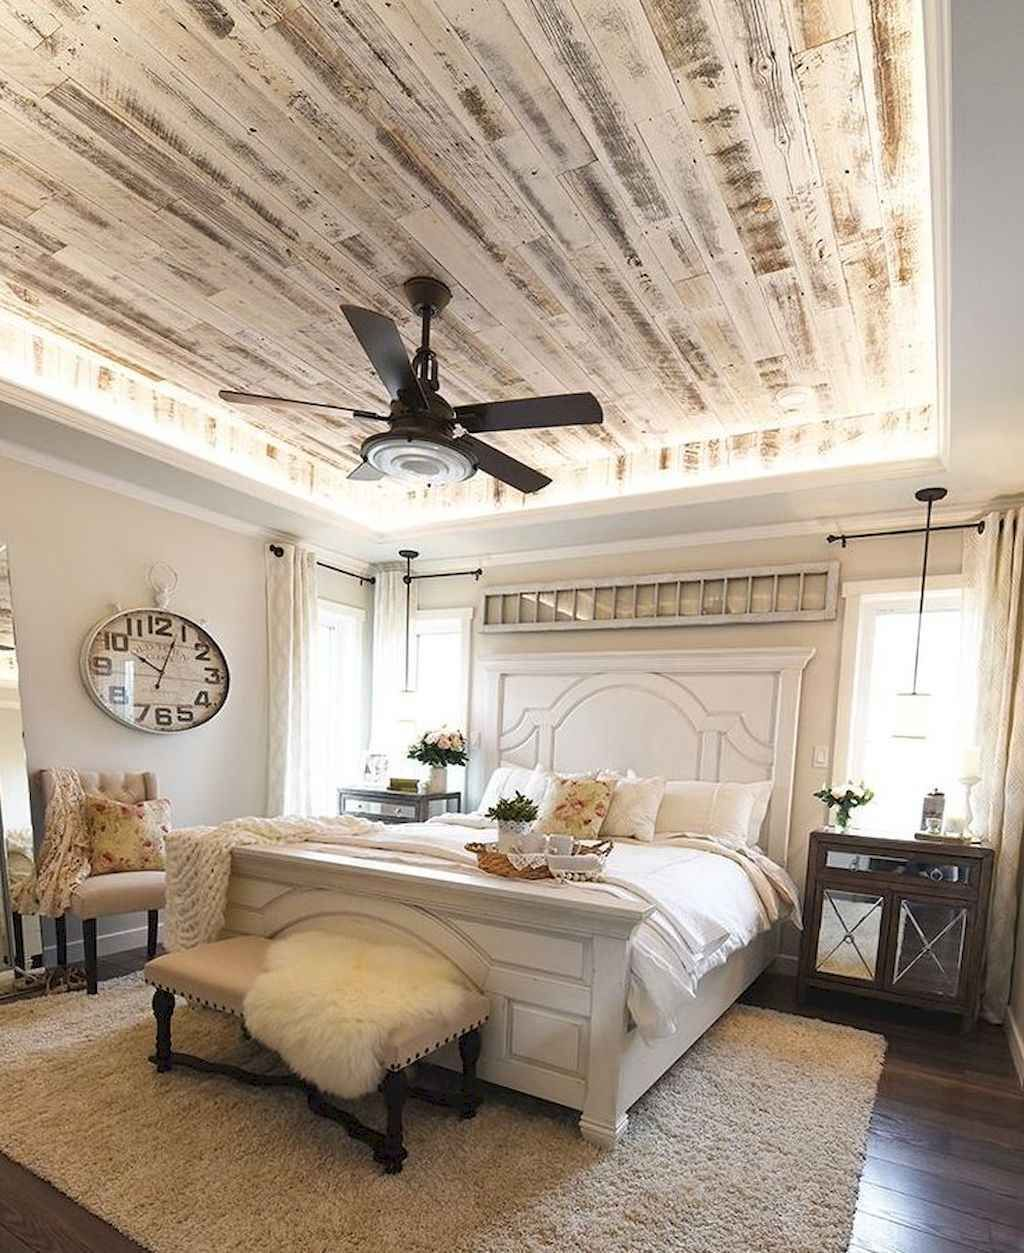 04 Affordable French Country Bedroom Decor Ideas Decoradeas French Country Decorating Bedroom Farmhouse Bedroom Decor Country Bedroom Decor